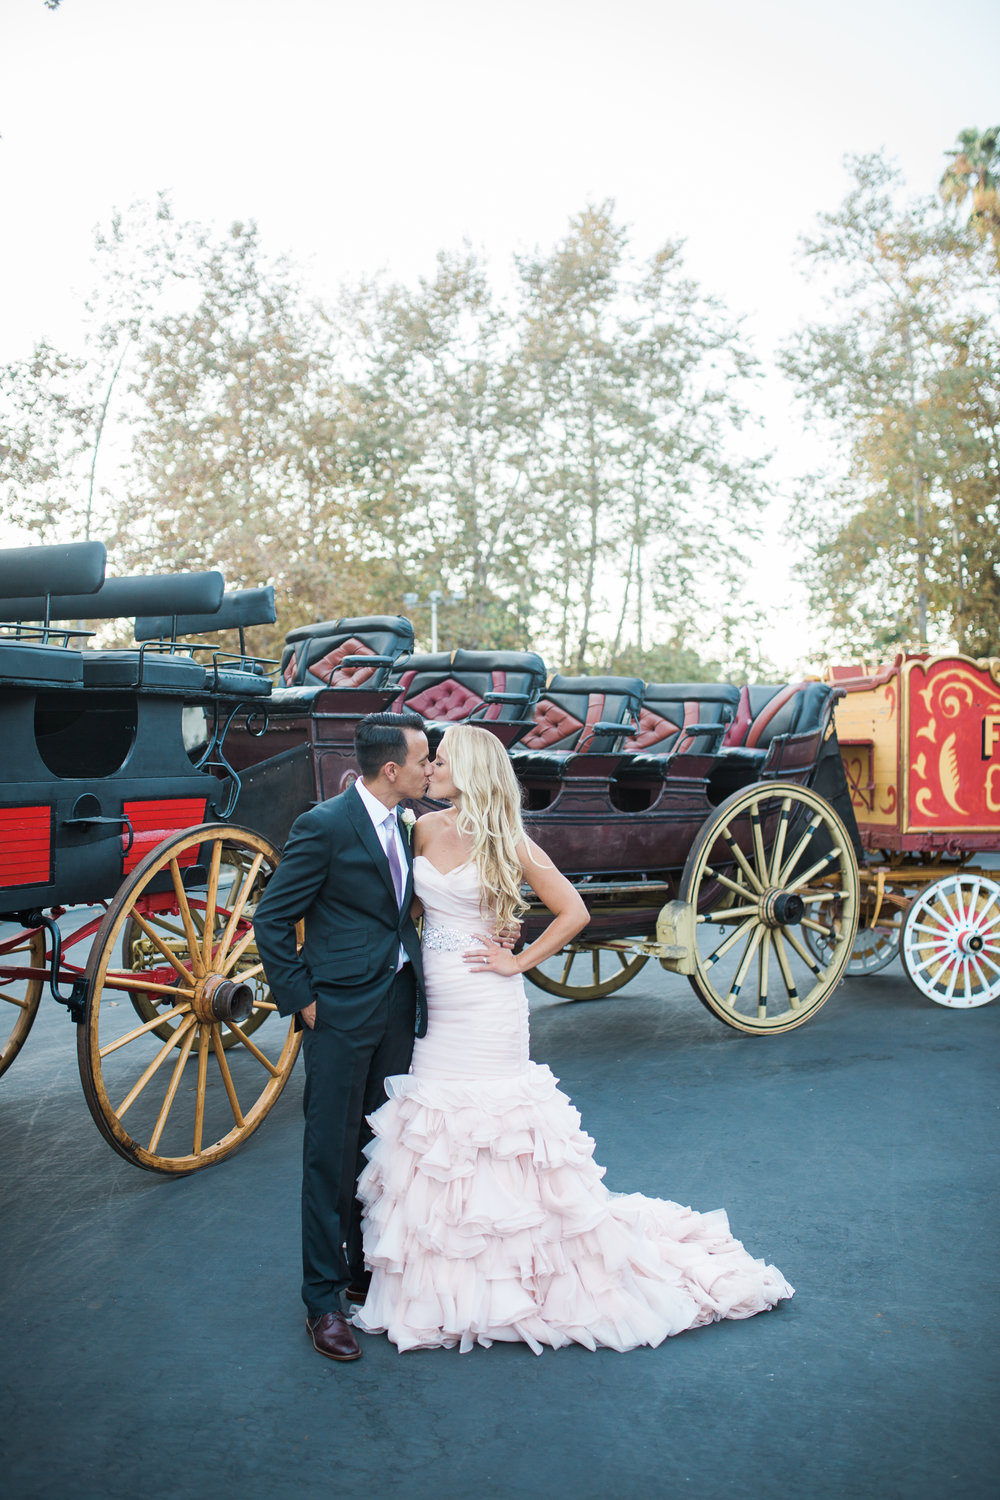 www.santabarbarawedding.com | Carriage Museum | Kiel Rucker Photography | Carriages | Bride and Groom